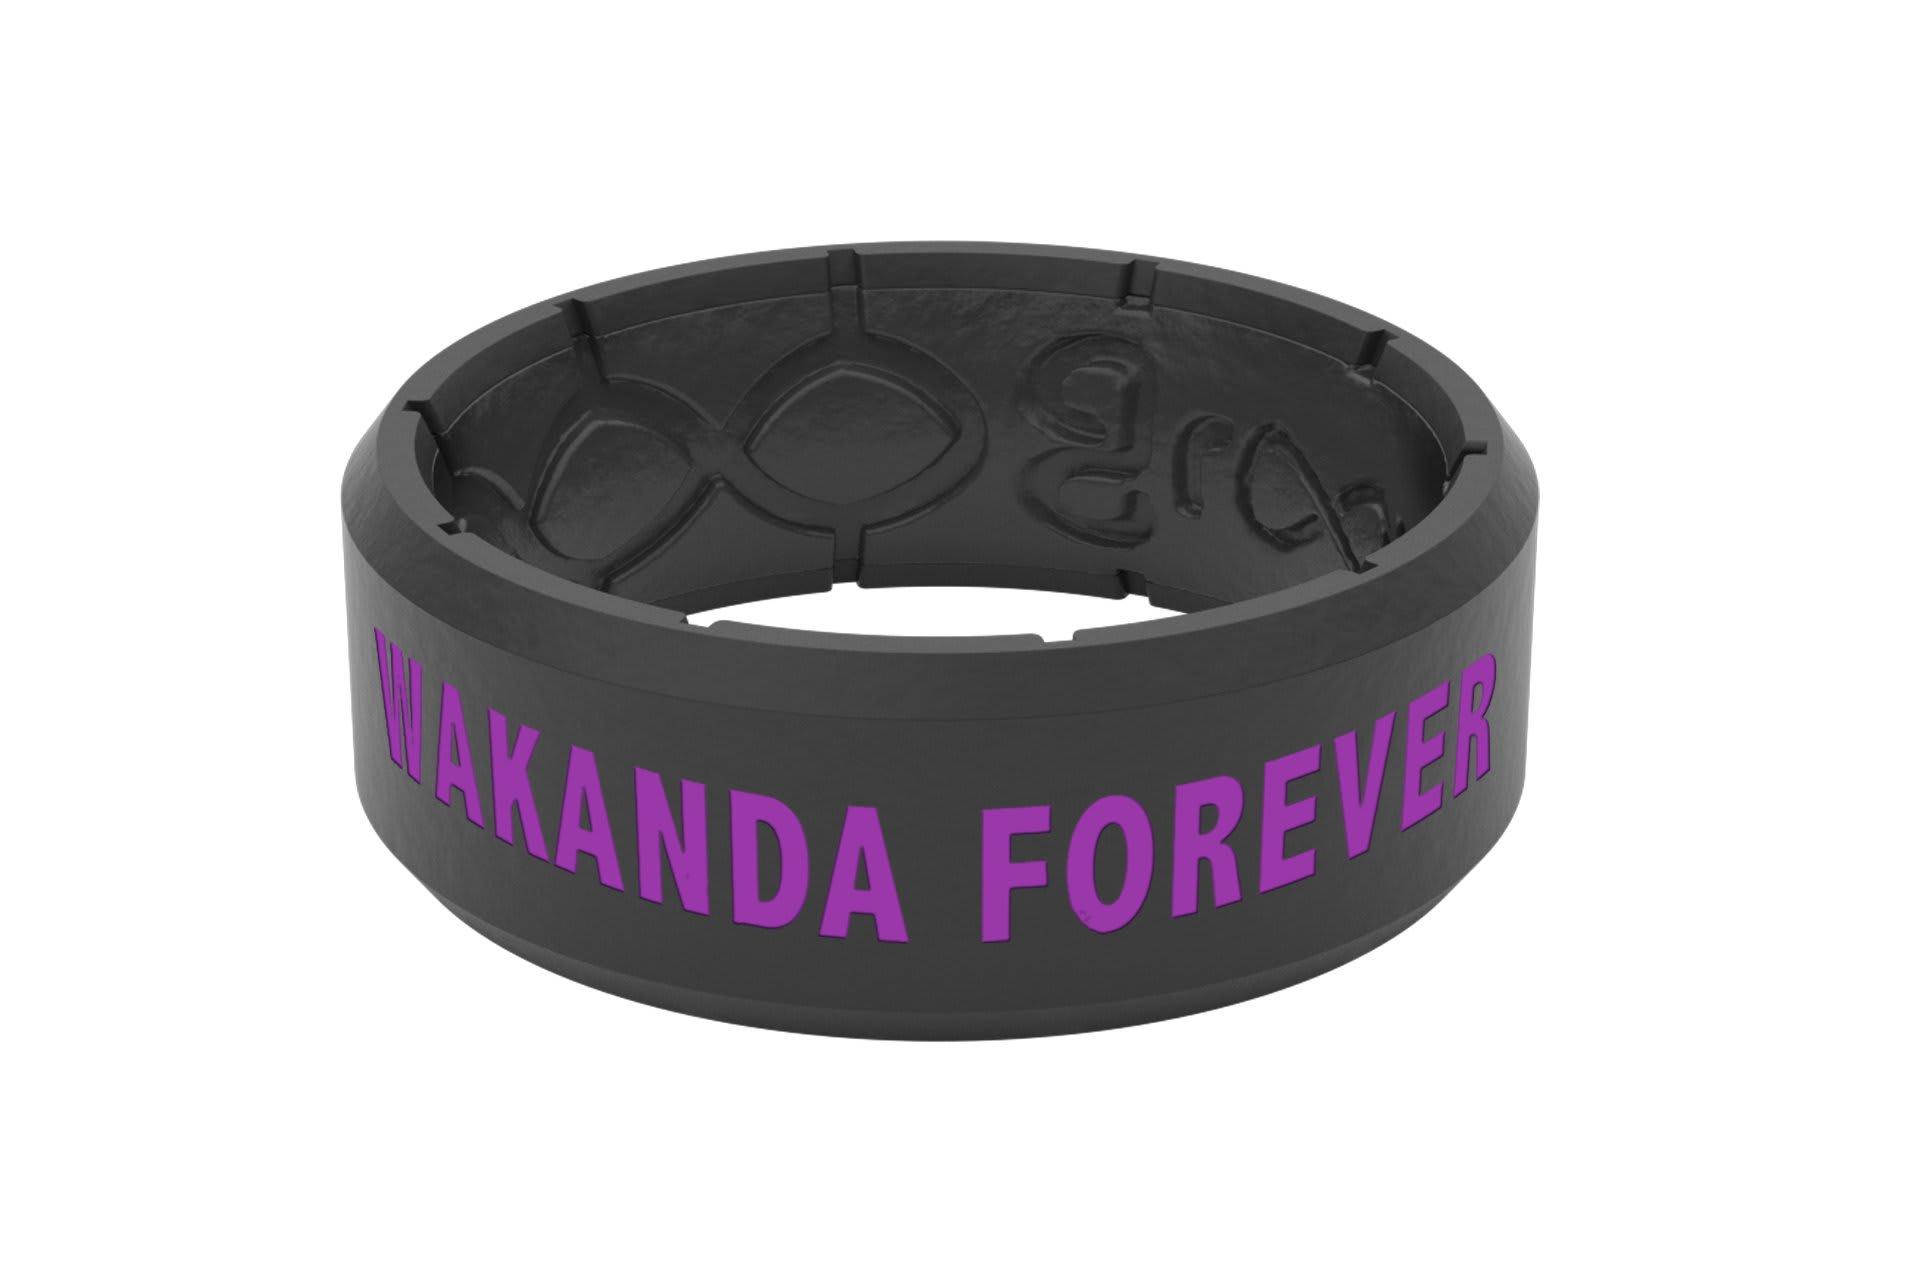 Black Panther Wakanda Forever Icon  viewed from side